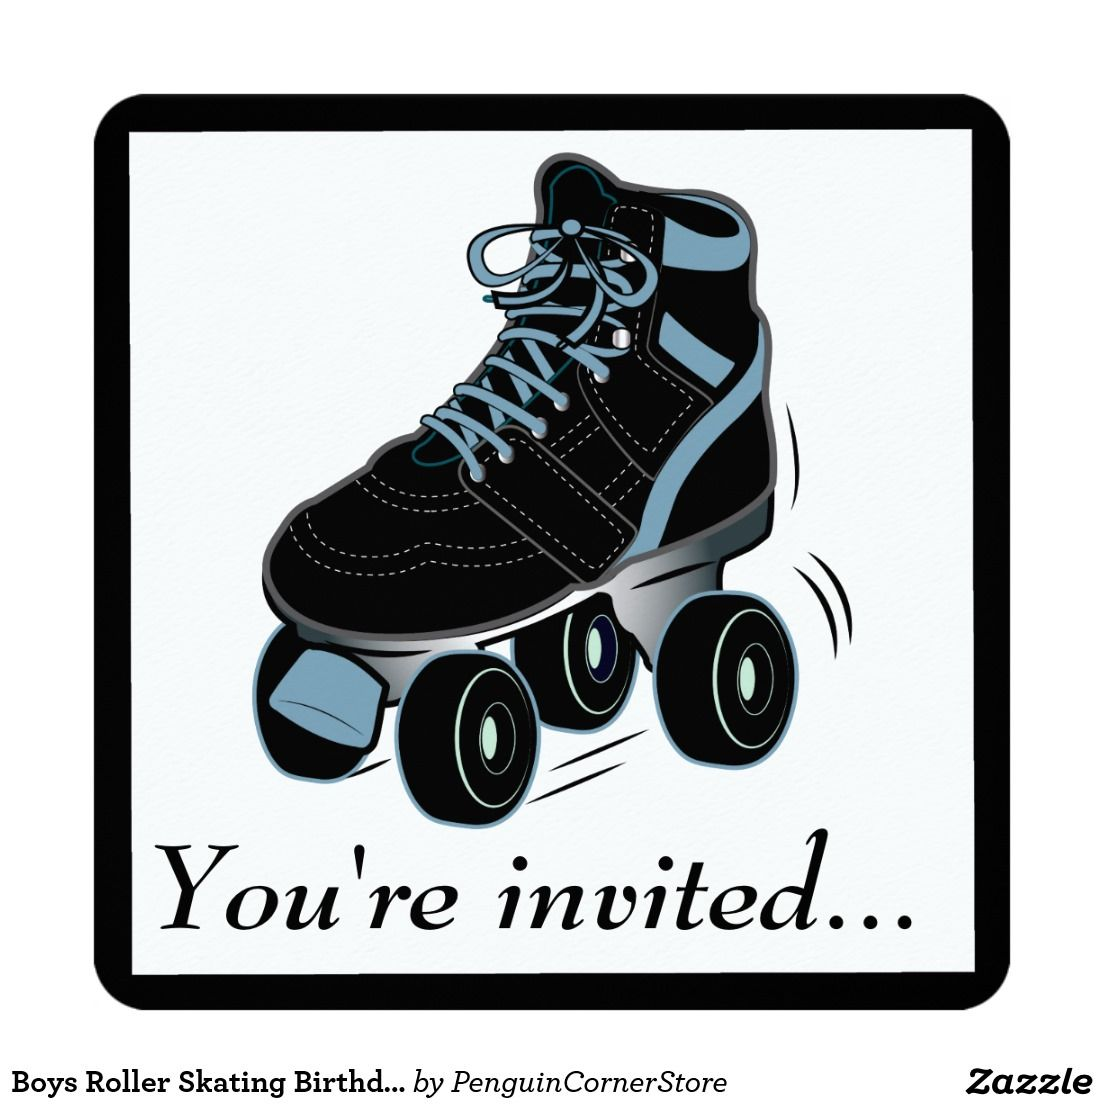 Boys Roller Skating Birthday Party Invitation   Our Recently Sold ...